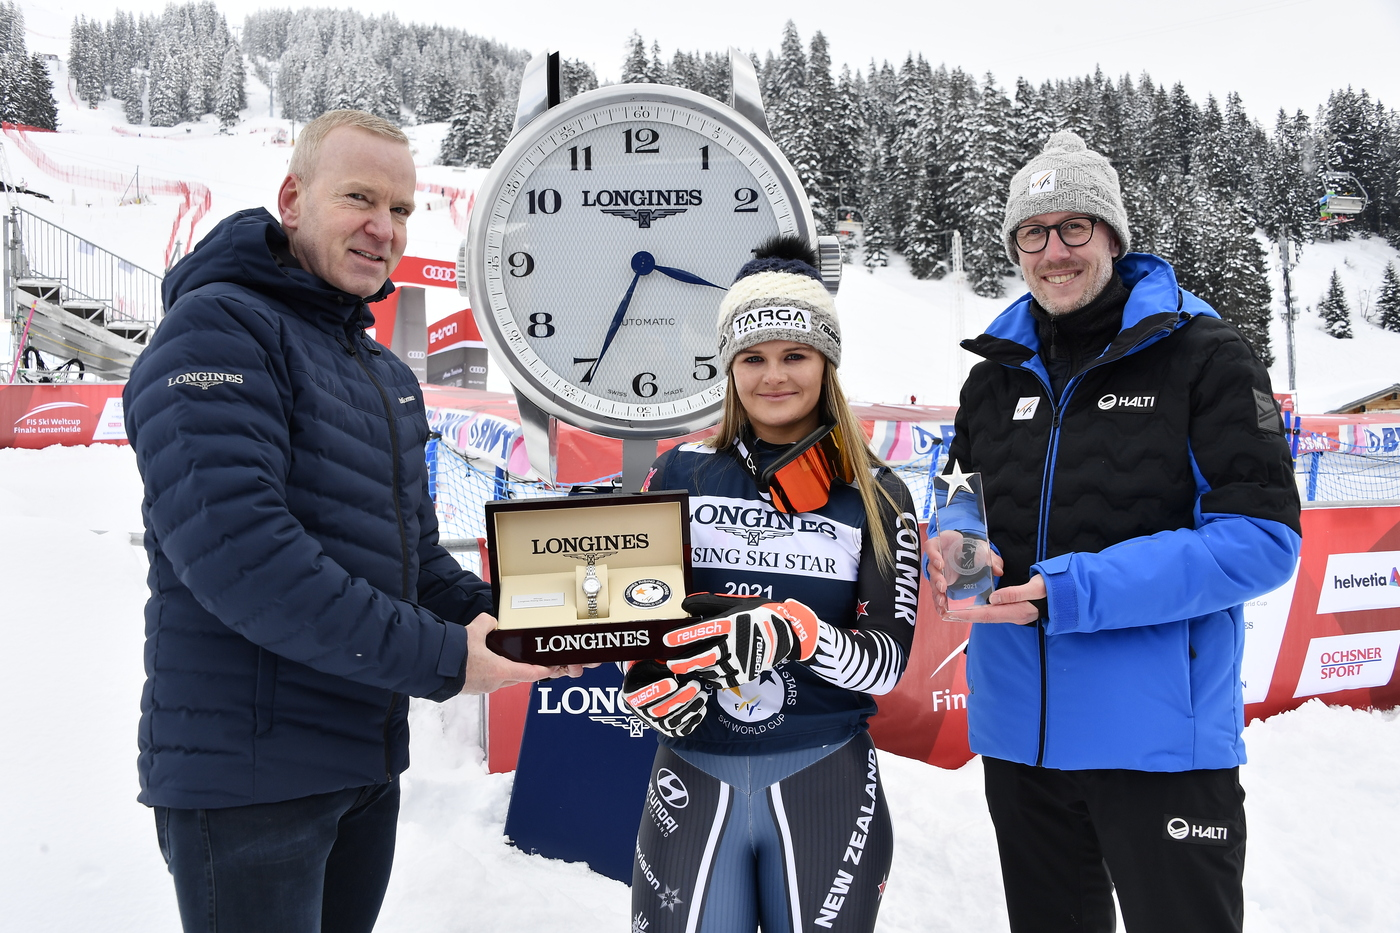 Longines Alpine Skiing Event: Lenzerheide marks the end of a prolific season for Longines' athletes 3